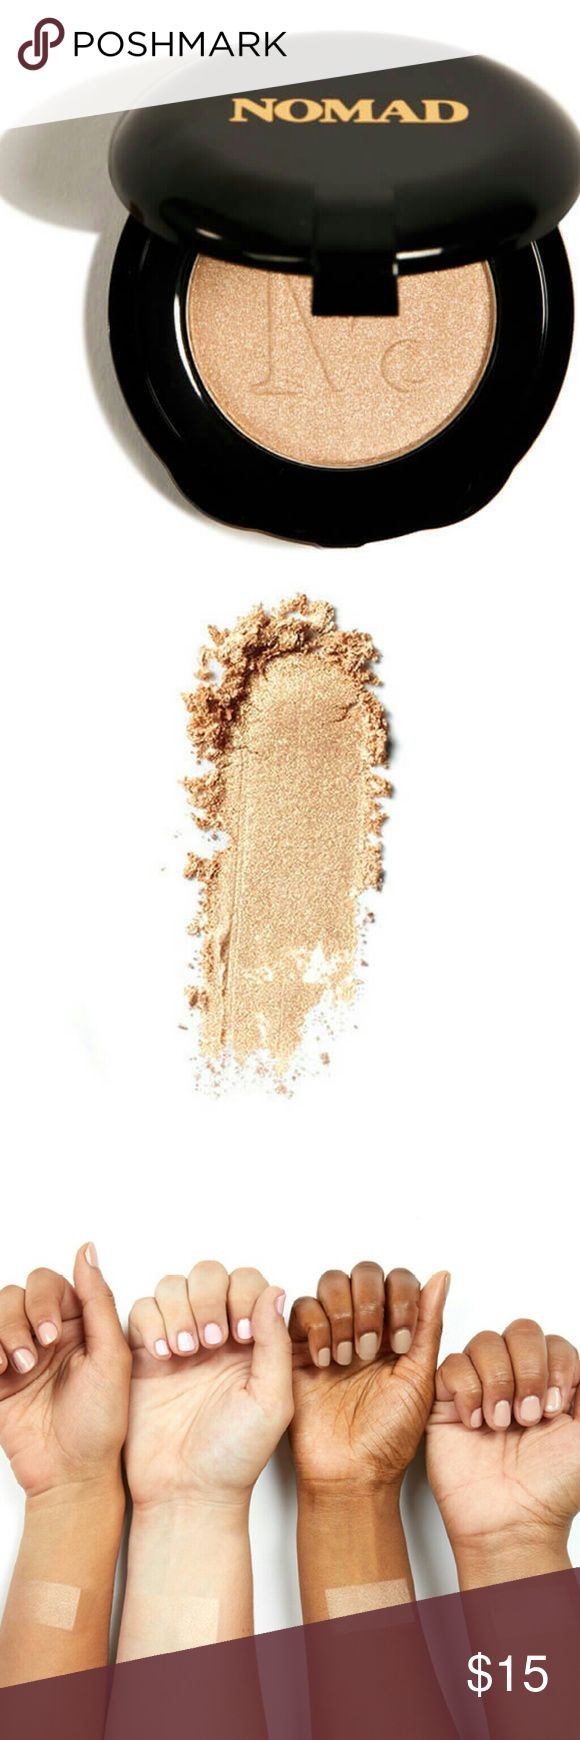 Nomad Highlight Powder In Midnight Sun (sealed) Highlight The Areas You  Want To Bring